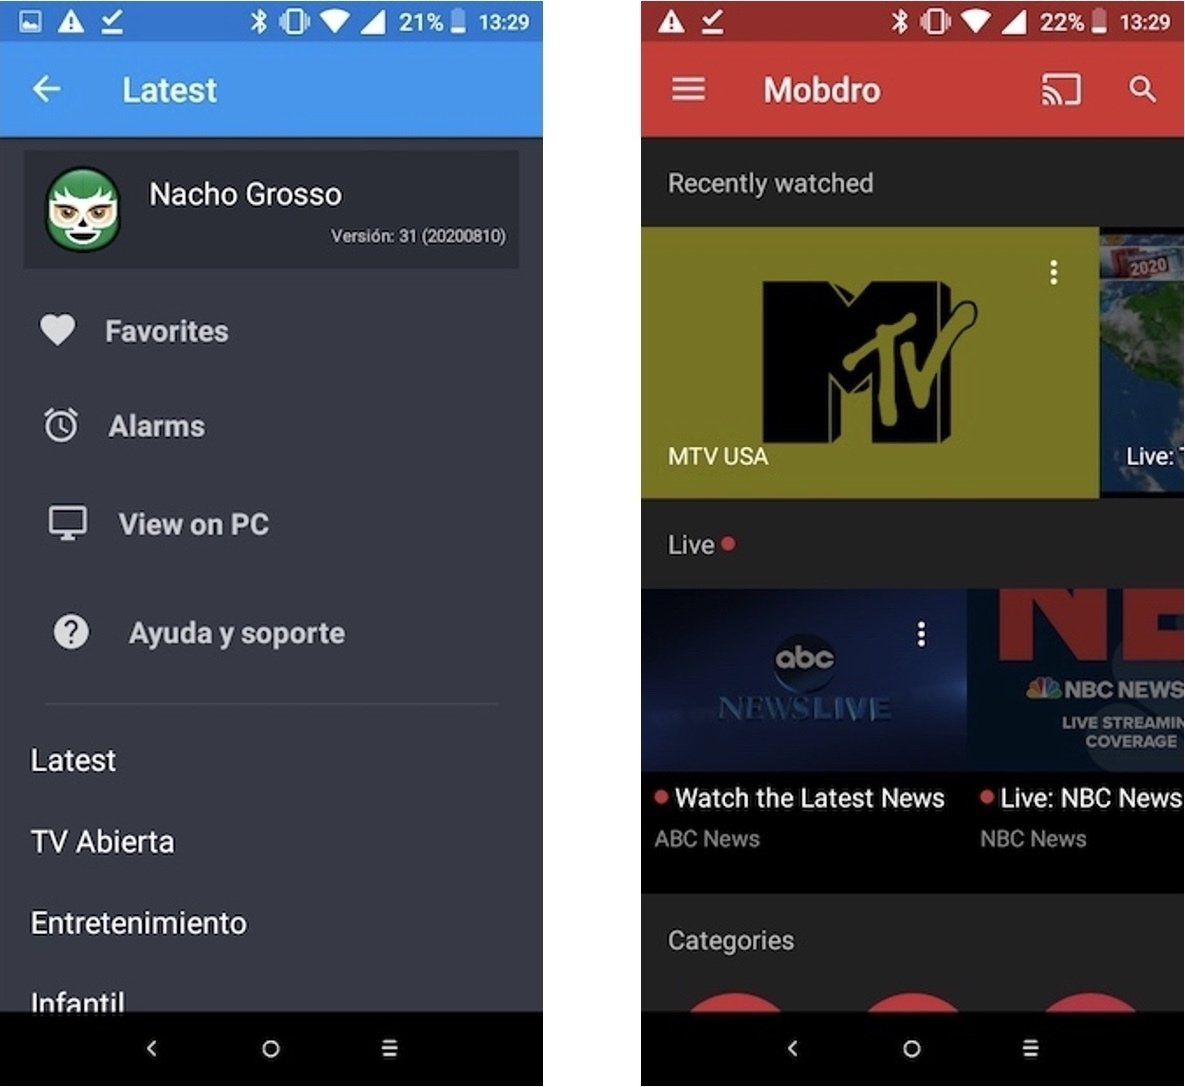 Pantalla inicio apps You TV Player y Mobdro